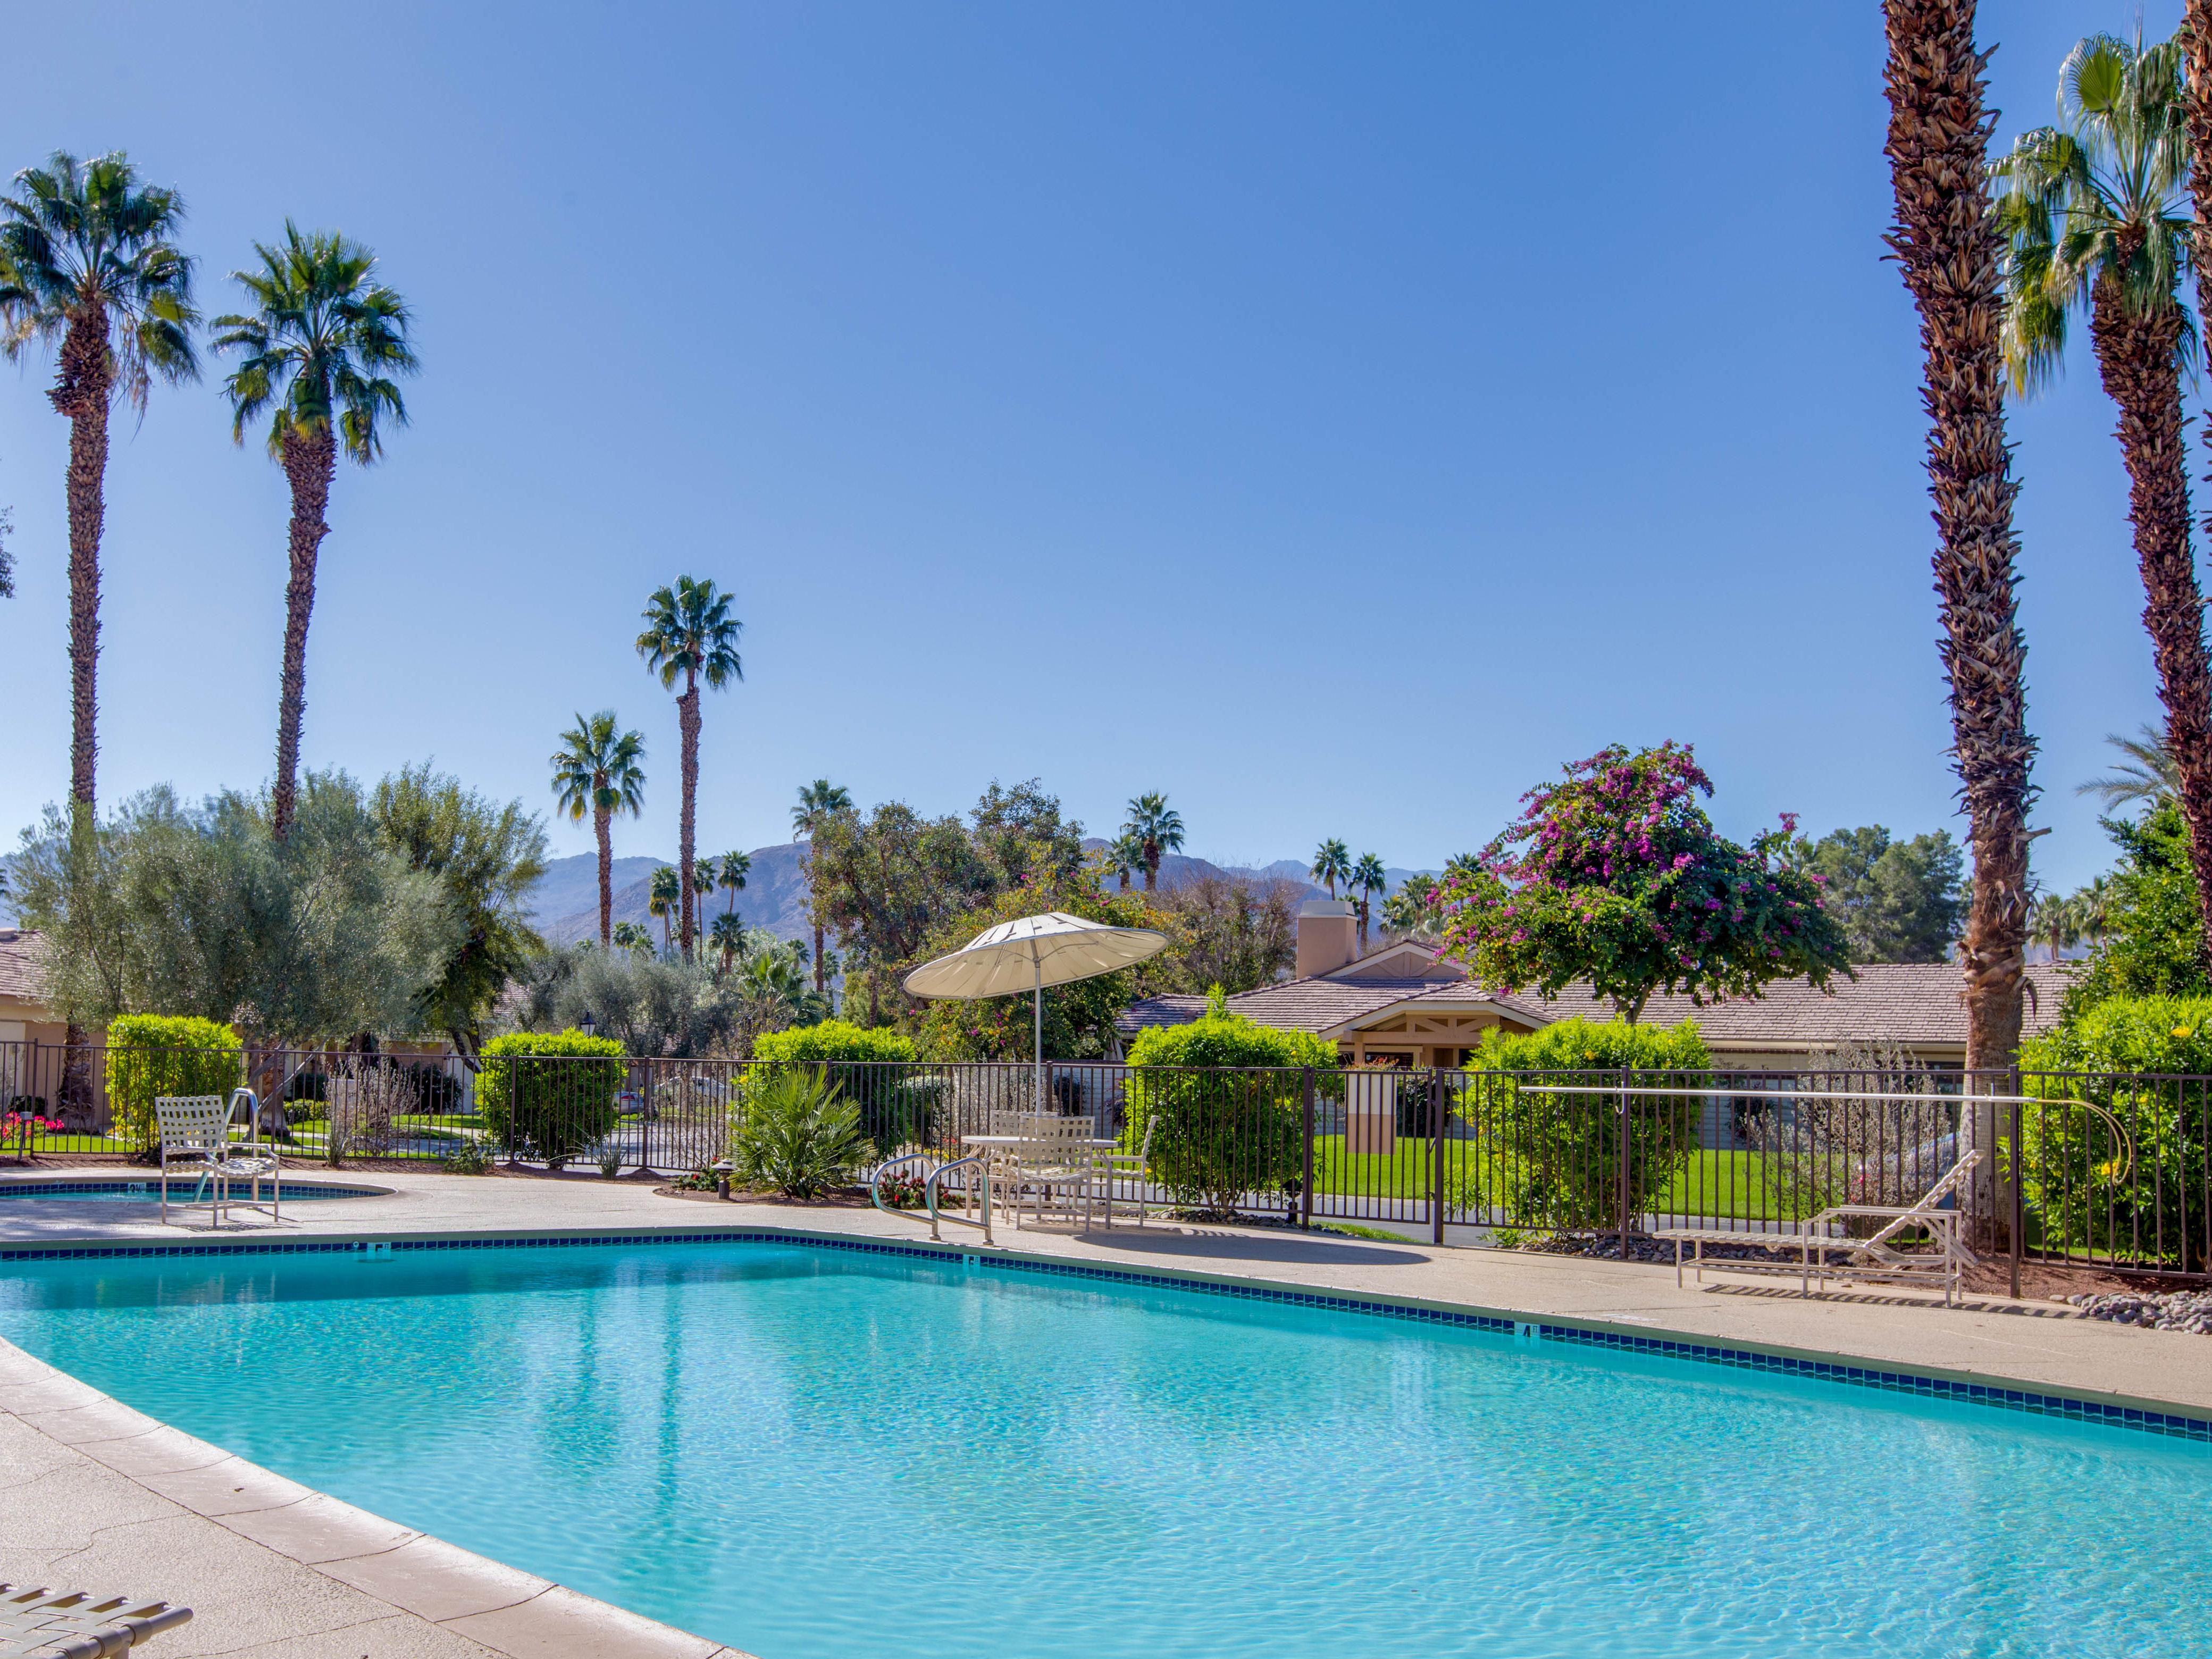 Property Image 2 - Large Luxury Condo with Resort Amenities in Palm Desert